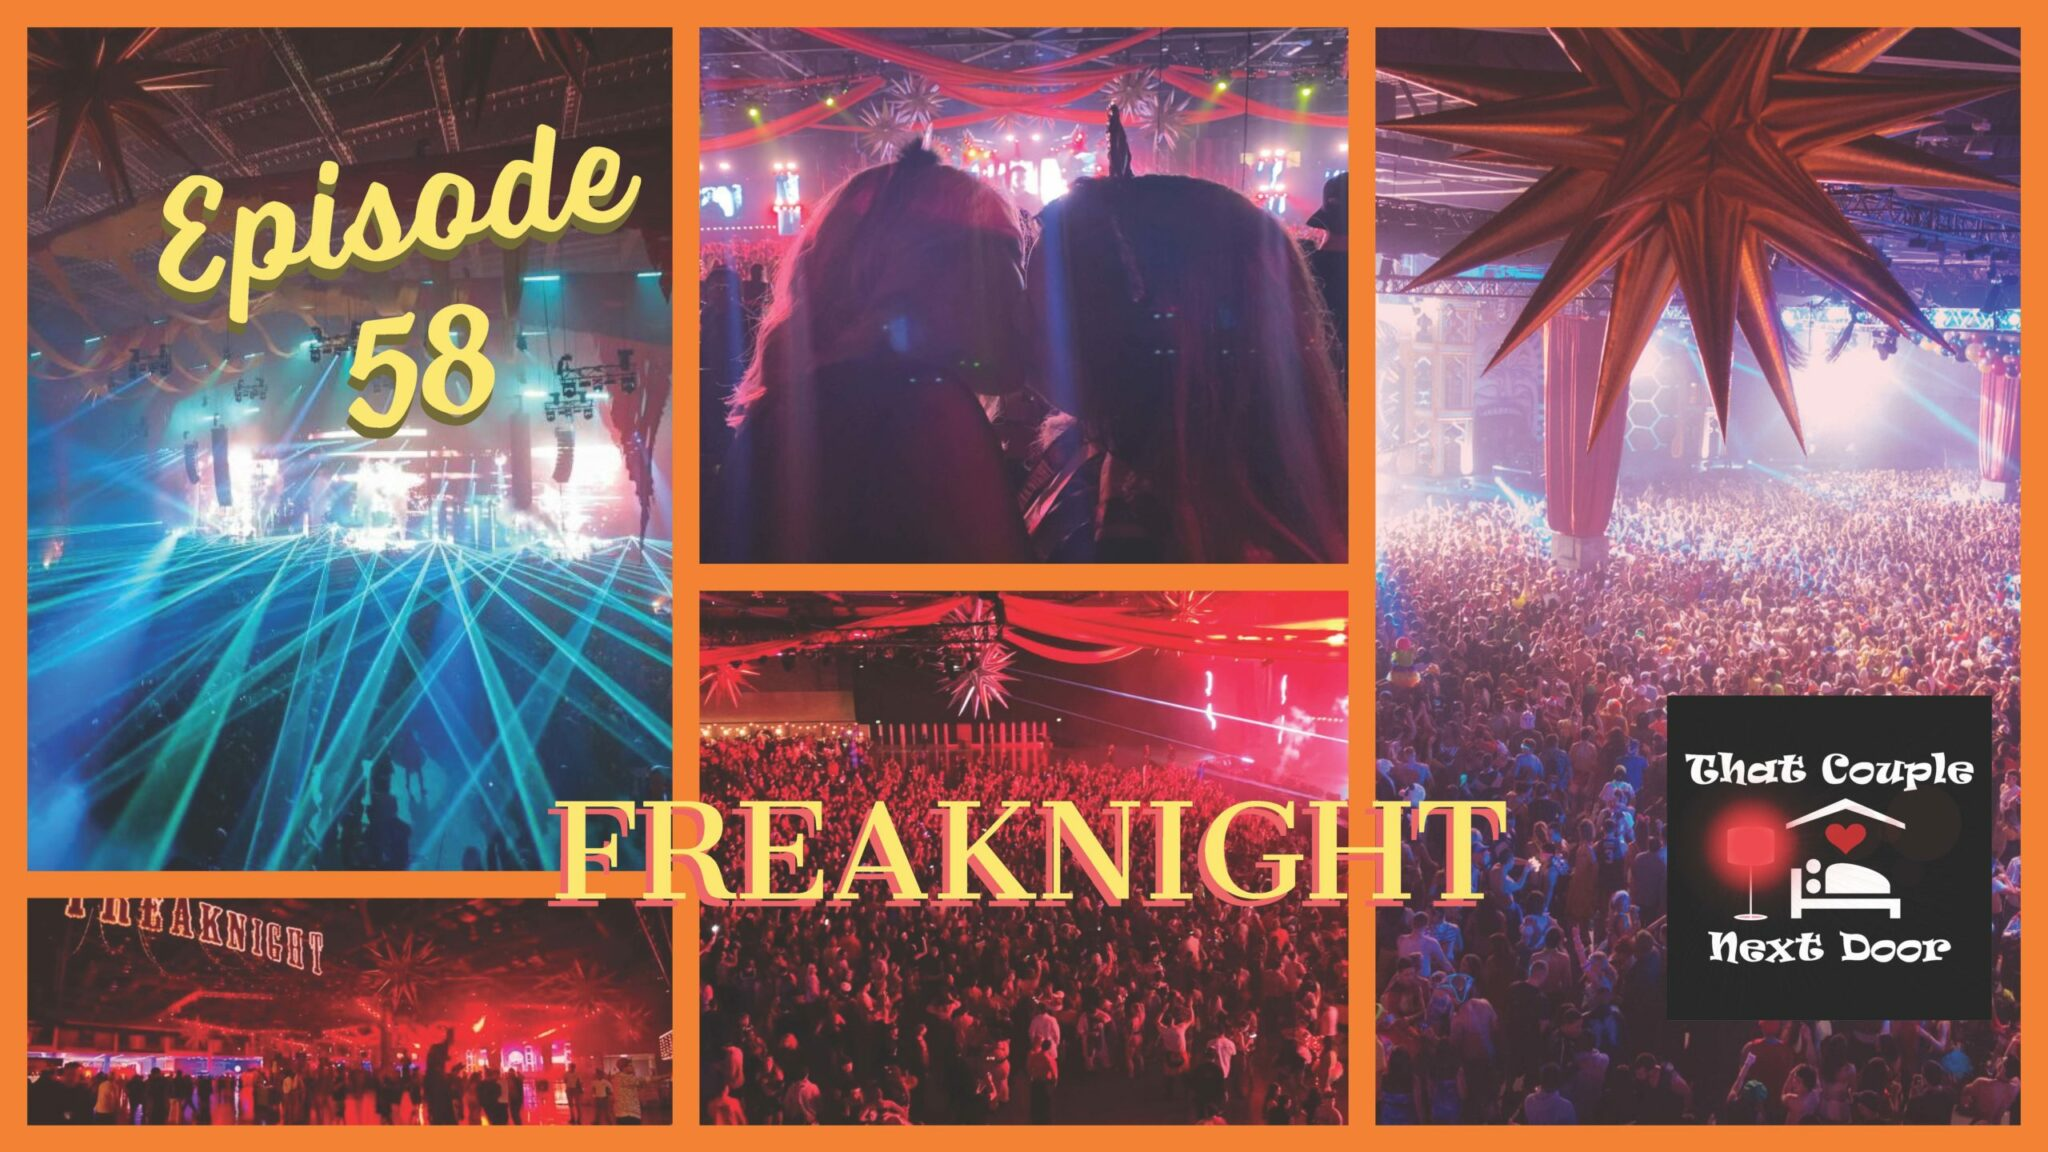 Remember when we could be out in crowds of people and enjoy music together?  It seems like a lifetime ago, but in this episode we recall attending the biggest EDM show we've seen.  FreakNight in Seattle is the largest annual Halloween raver...